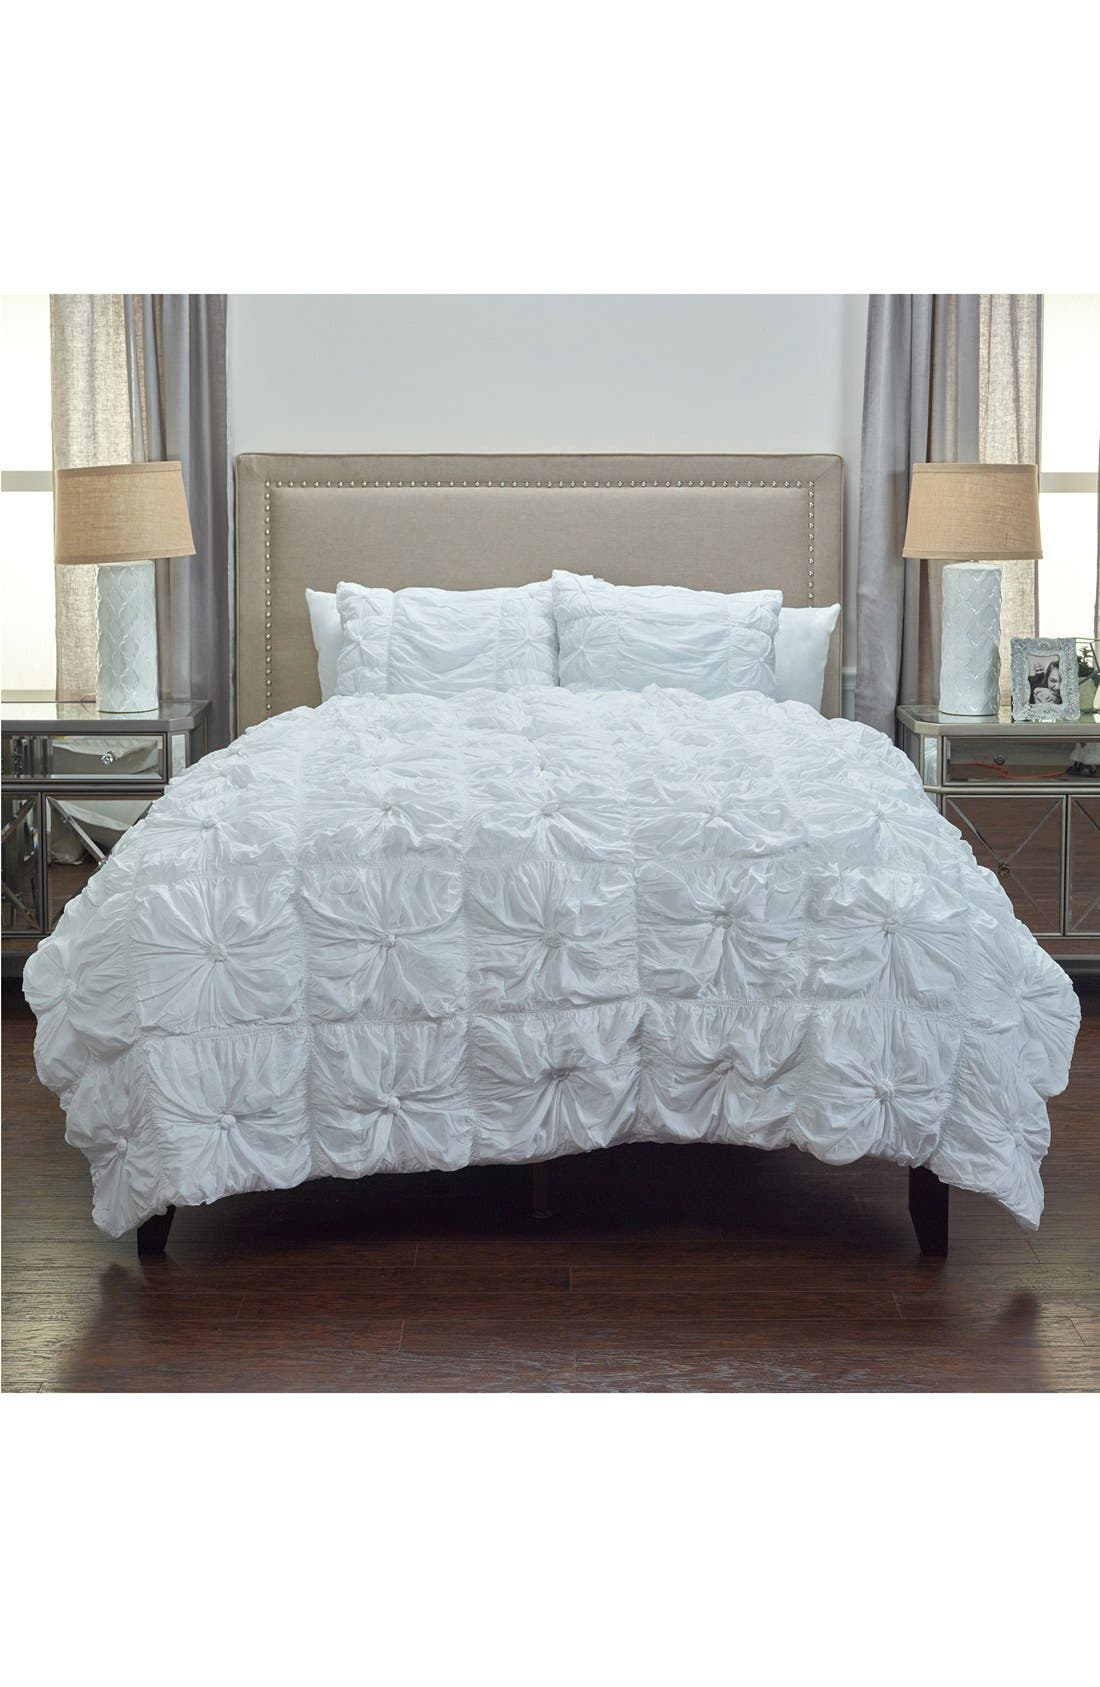 Main Image - Rizzy Home Knots Comforter & Sham Set